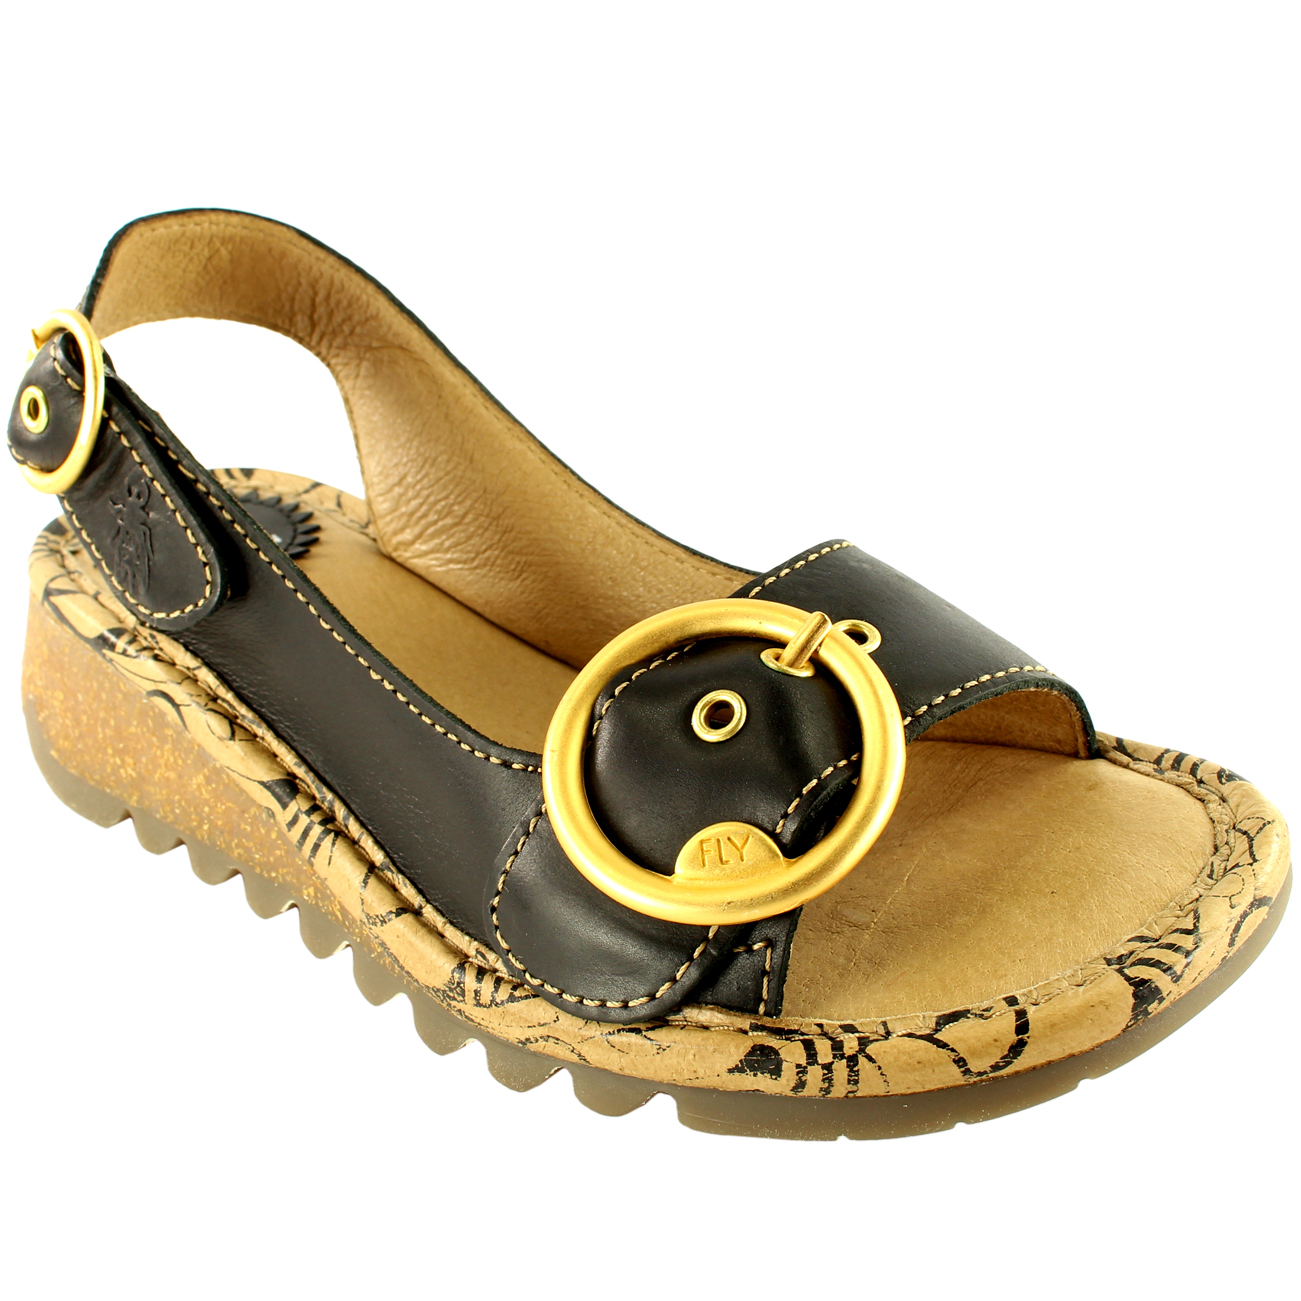 fdbbf51f7e Details about Ladies Fly London Tram Low Wedge Leather Sling Back Open Toe  Sandals All Sizes